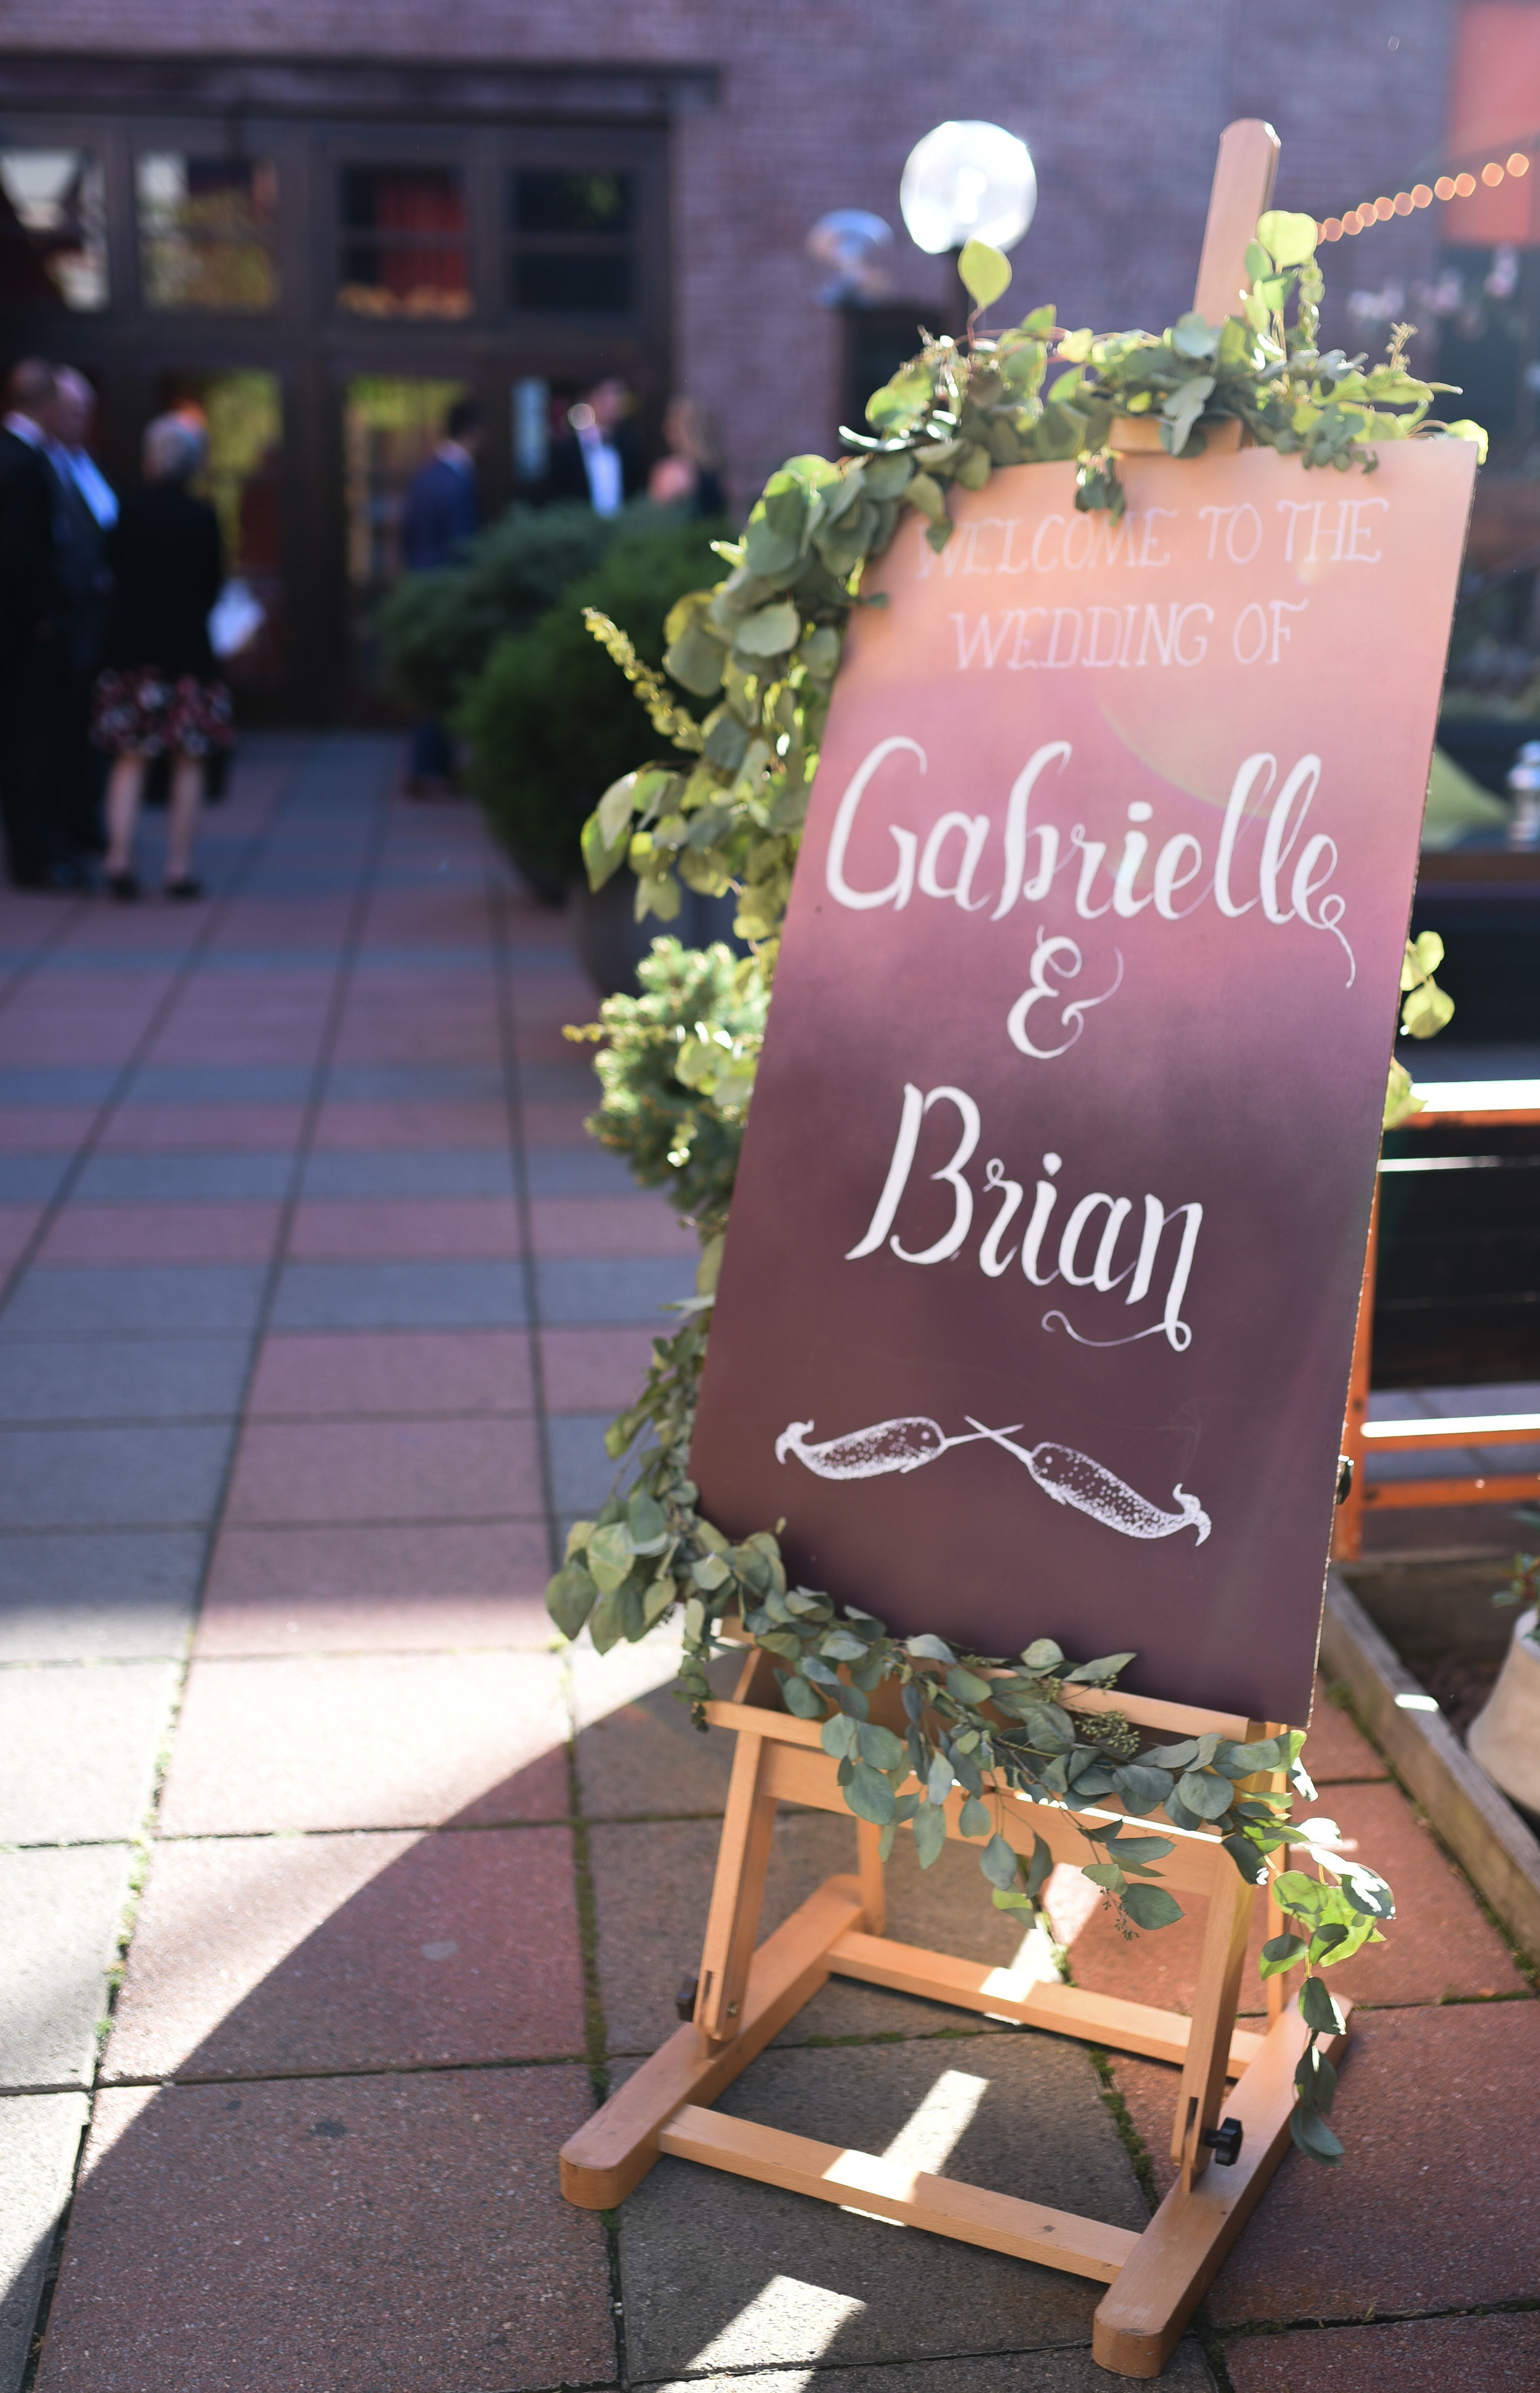 A handmade wedding sign